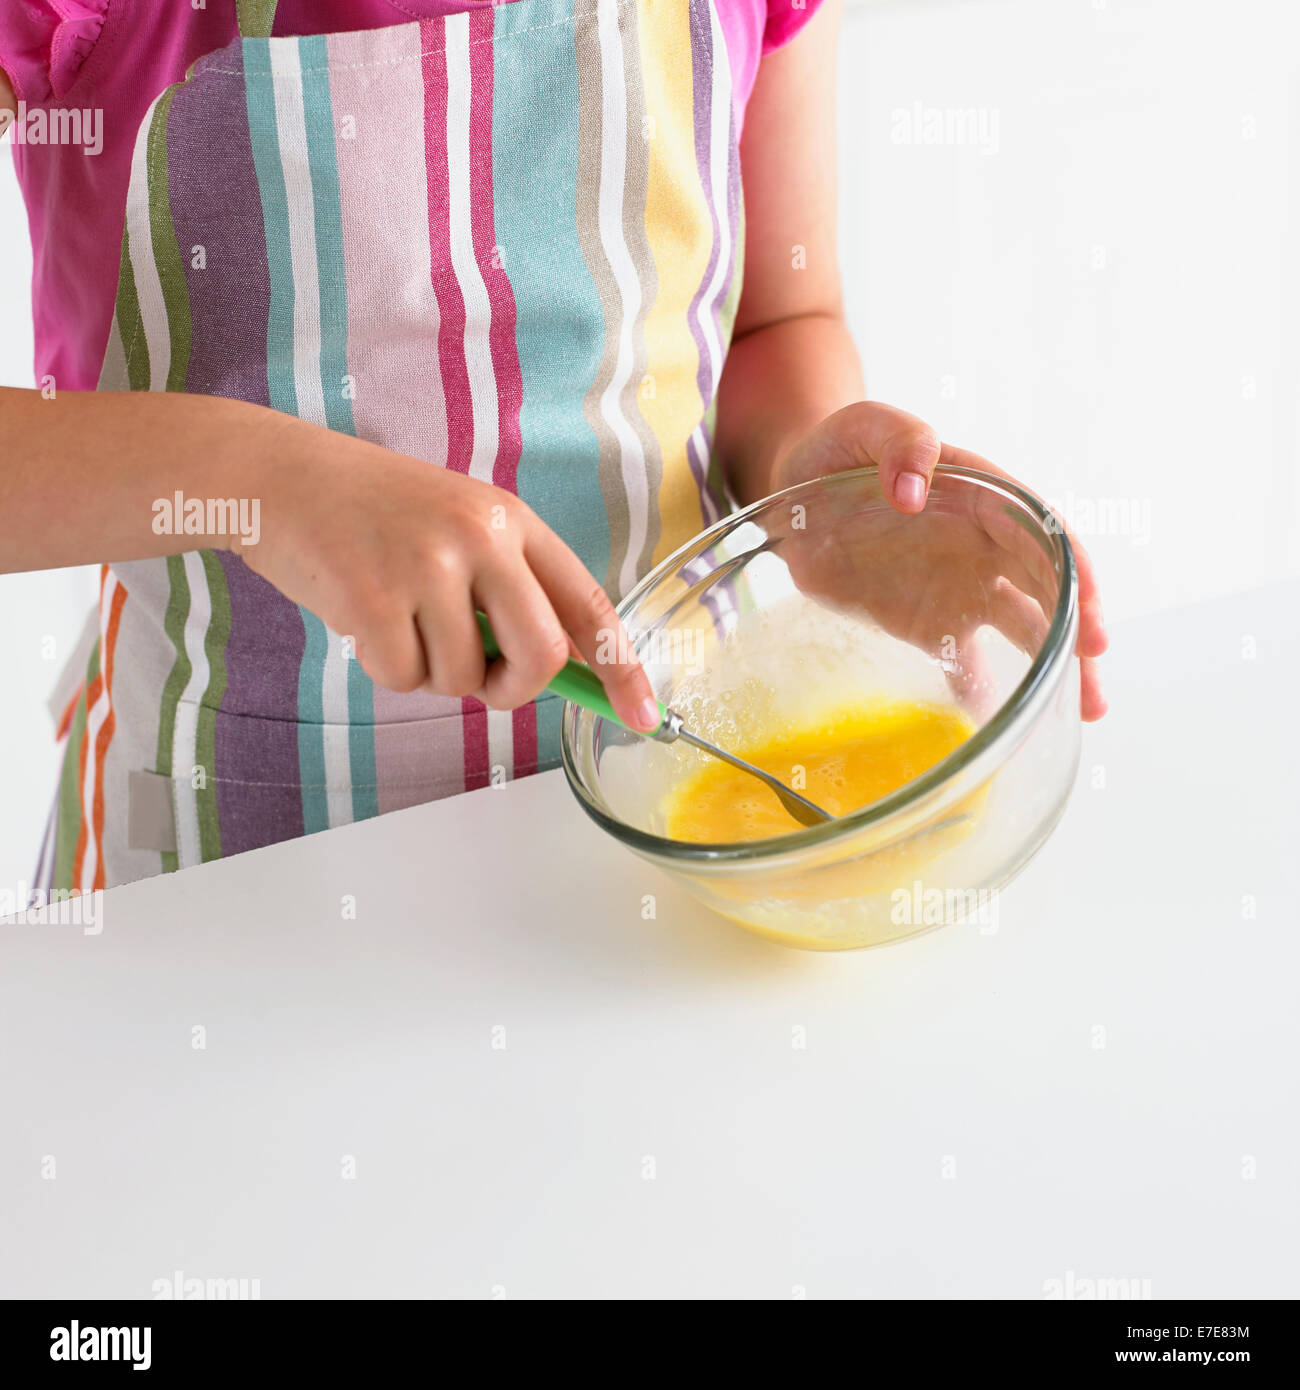 Girl whisking eggs in a bowl with a fork - Stock Image